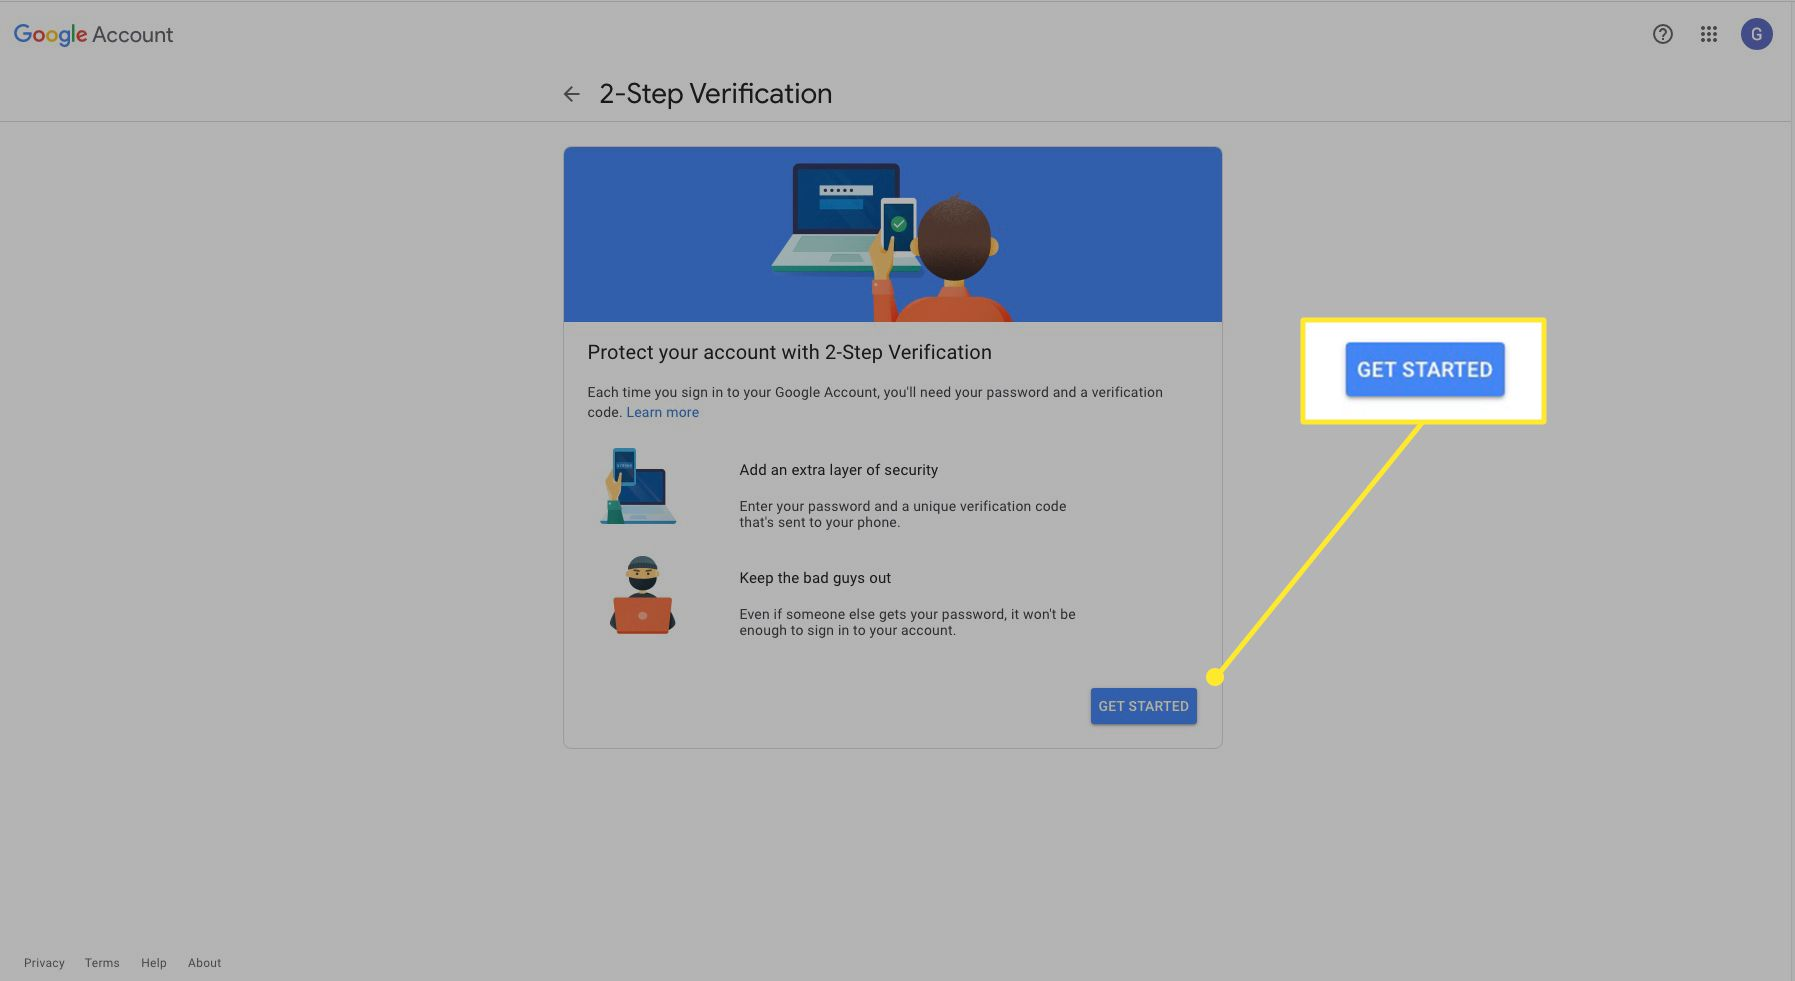 Google 2-step verification screen with Get Started highlighted